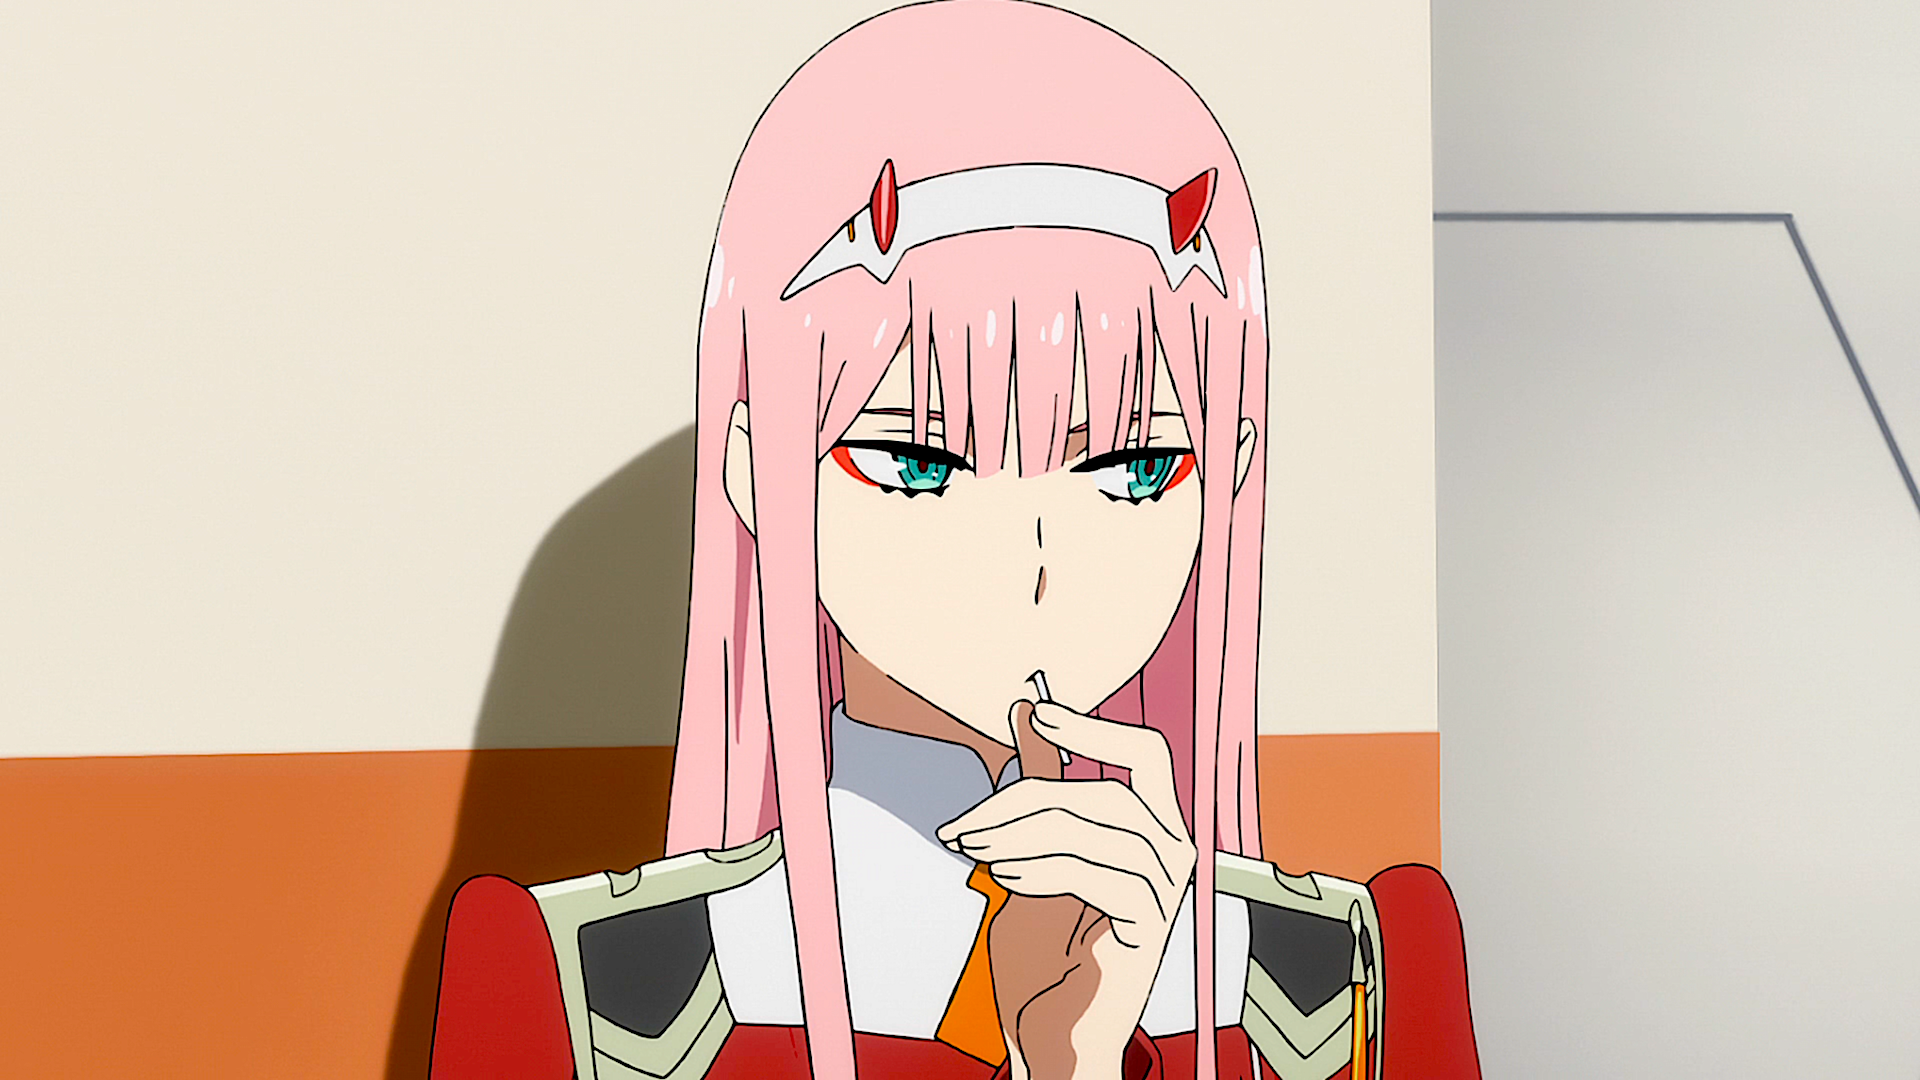 Anime Darling In The Franxx Zero Two Darling In The Franxx Pink Hair Green Eyes Horns Anime Wallpaper Darling In The Franxx Anime Anime Wallpaper